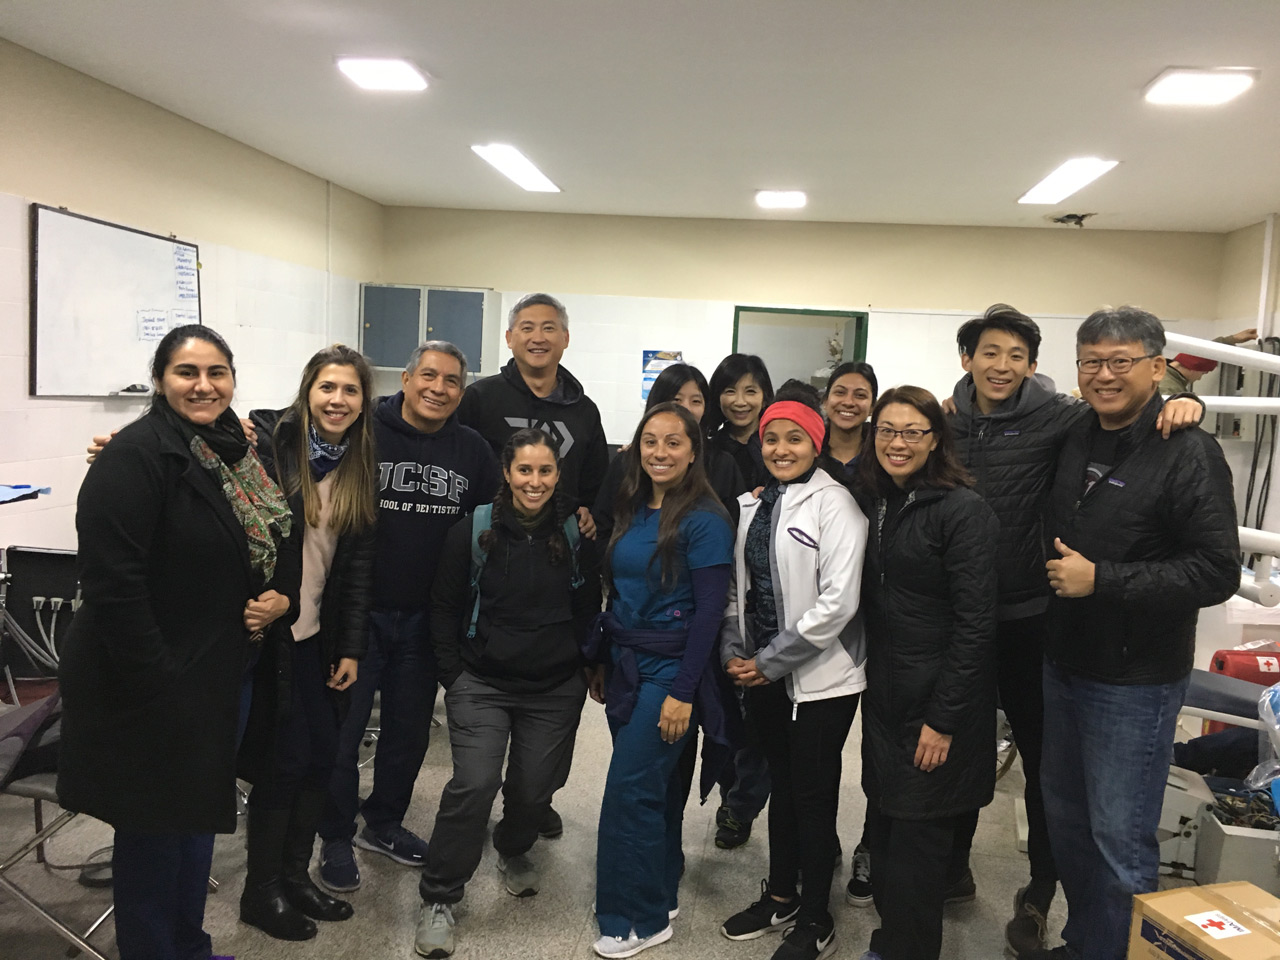 First meeting in the dental clinic at the hospital in Luque, Paraguay